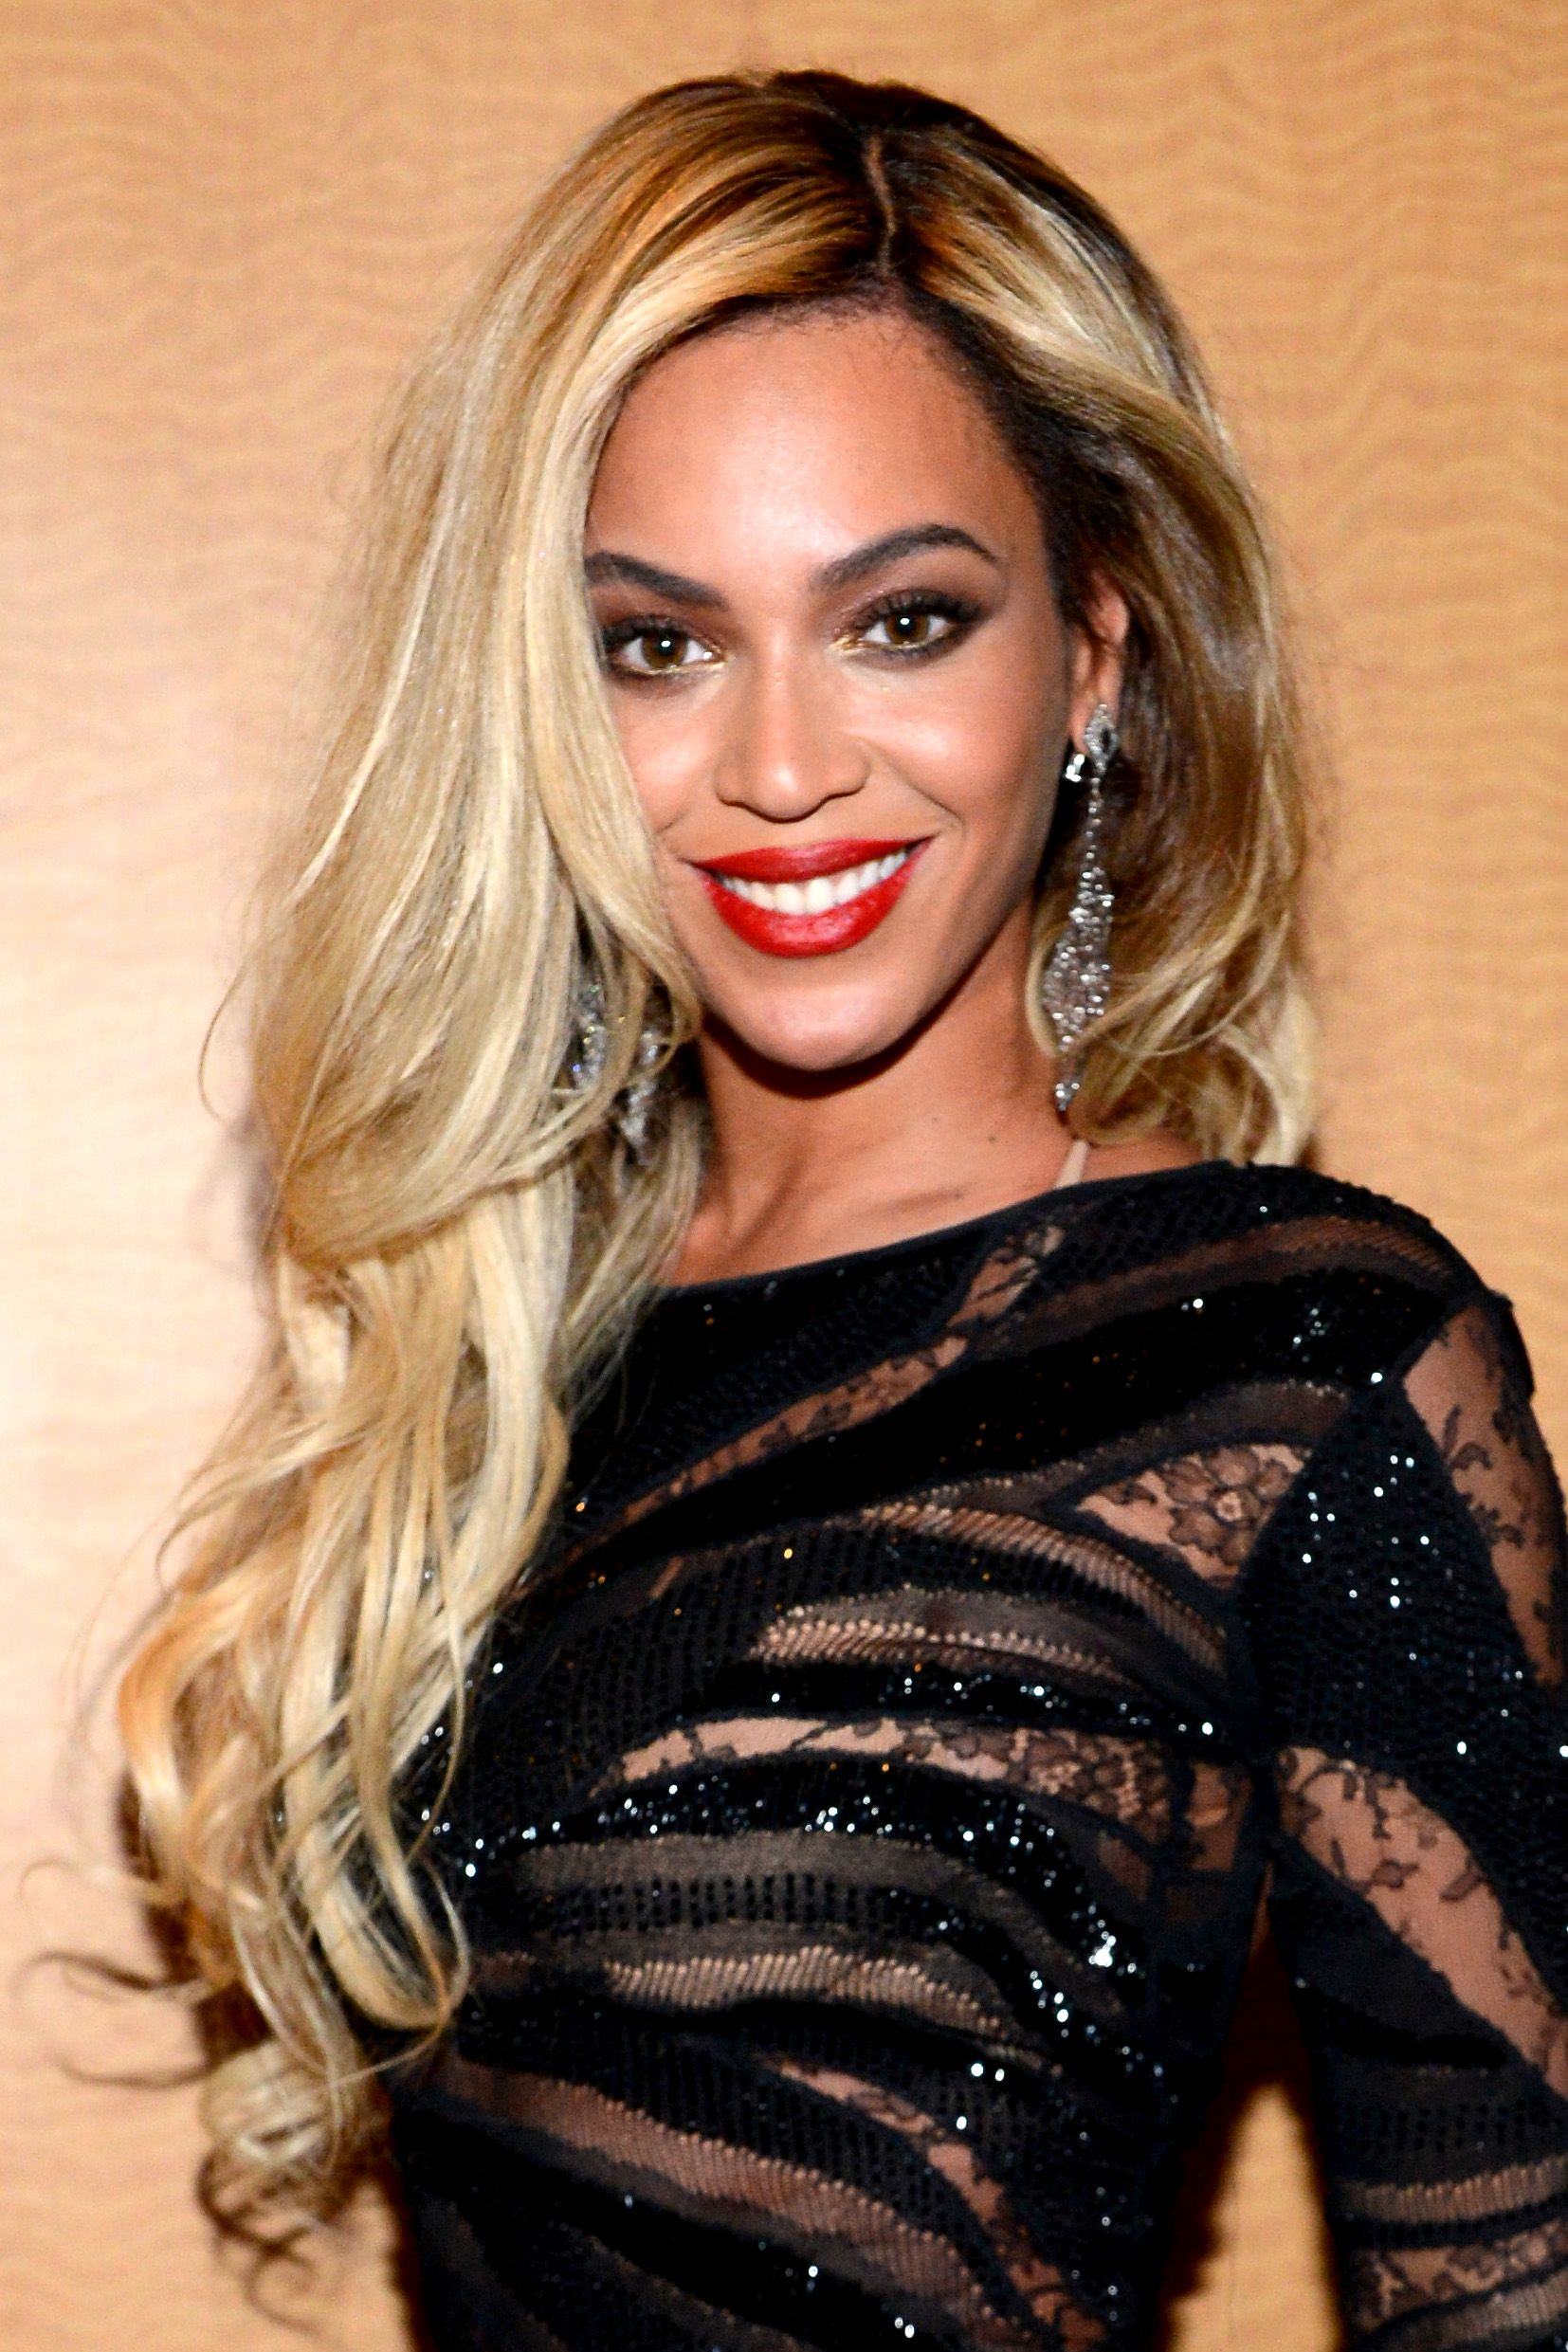 80 Best Beyonce Hairstyles of All Time - Beyoncé\'s Evolving Hair Looks